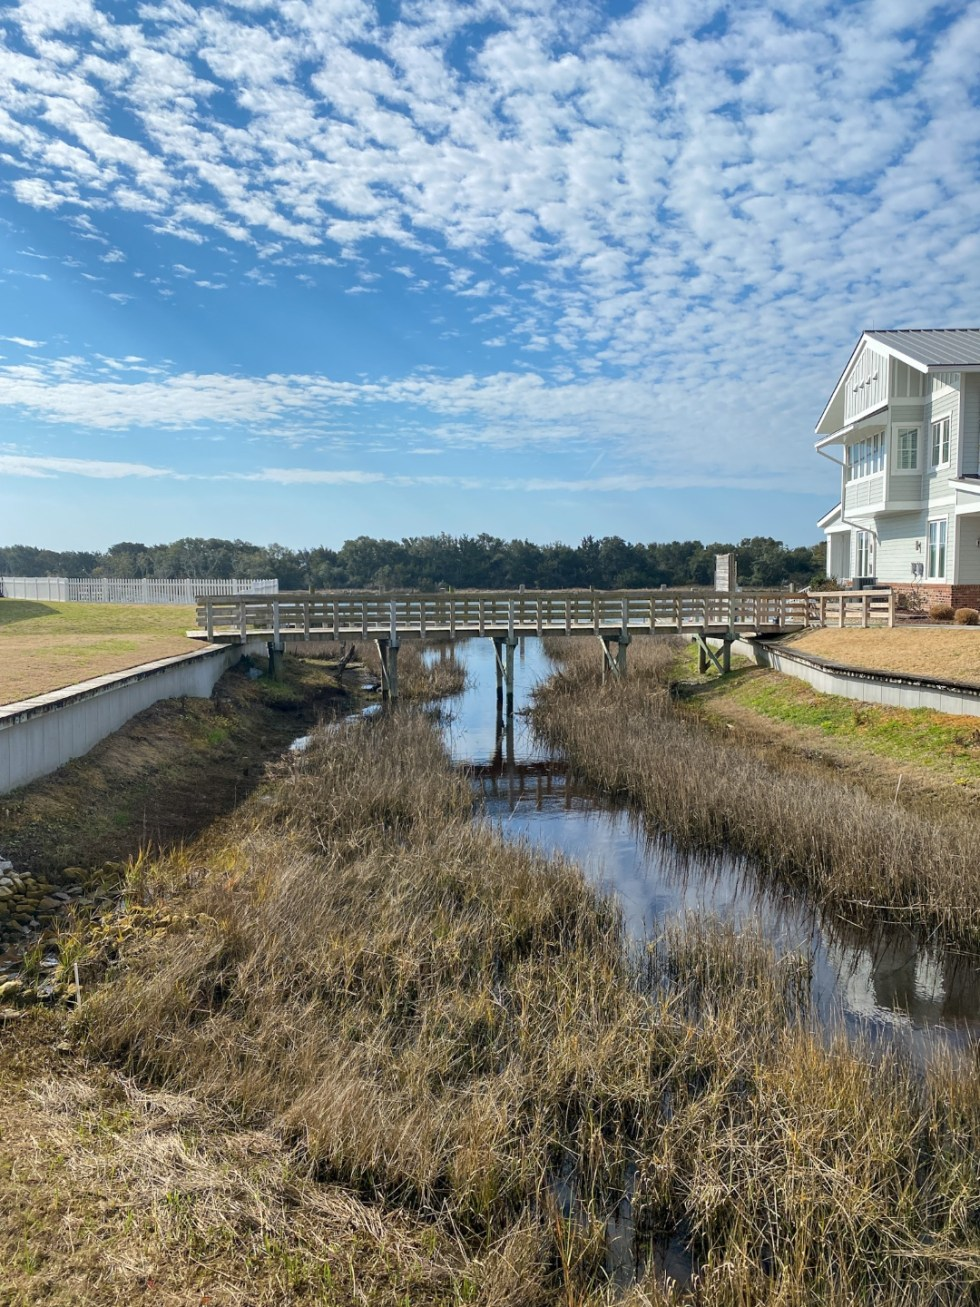 Weekend Travel: The Best Things to Do in Beaufort NC in 48 Hours - I'm Fixin' To - @imfixintoblog |Things to Do in Beaufort NC by popular NC travel blog, I'm Fixin' To: image of a wooden foot bridge.